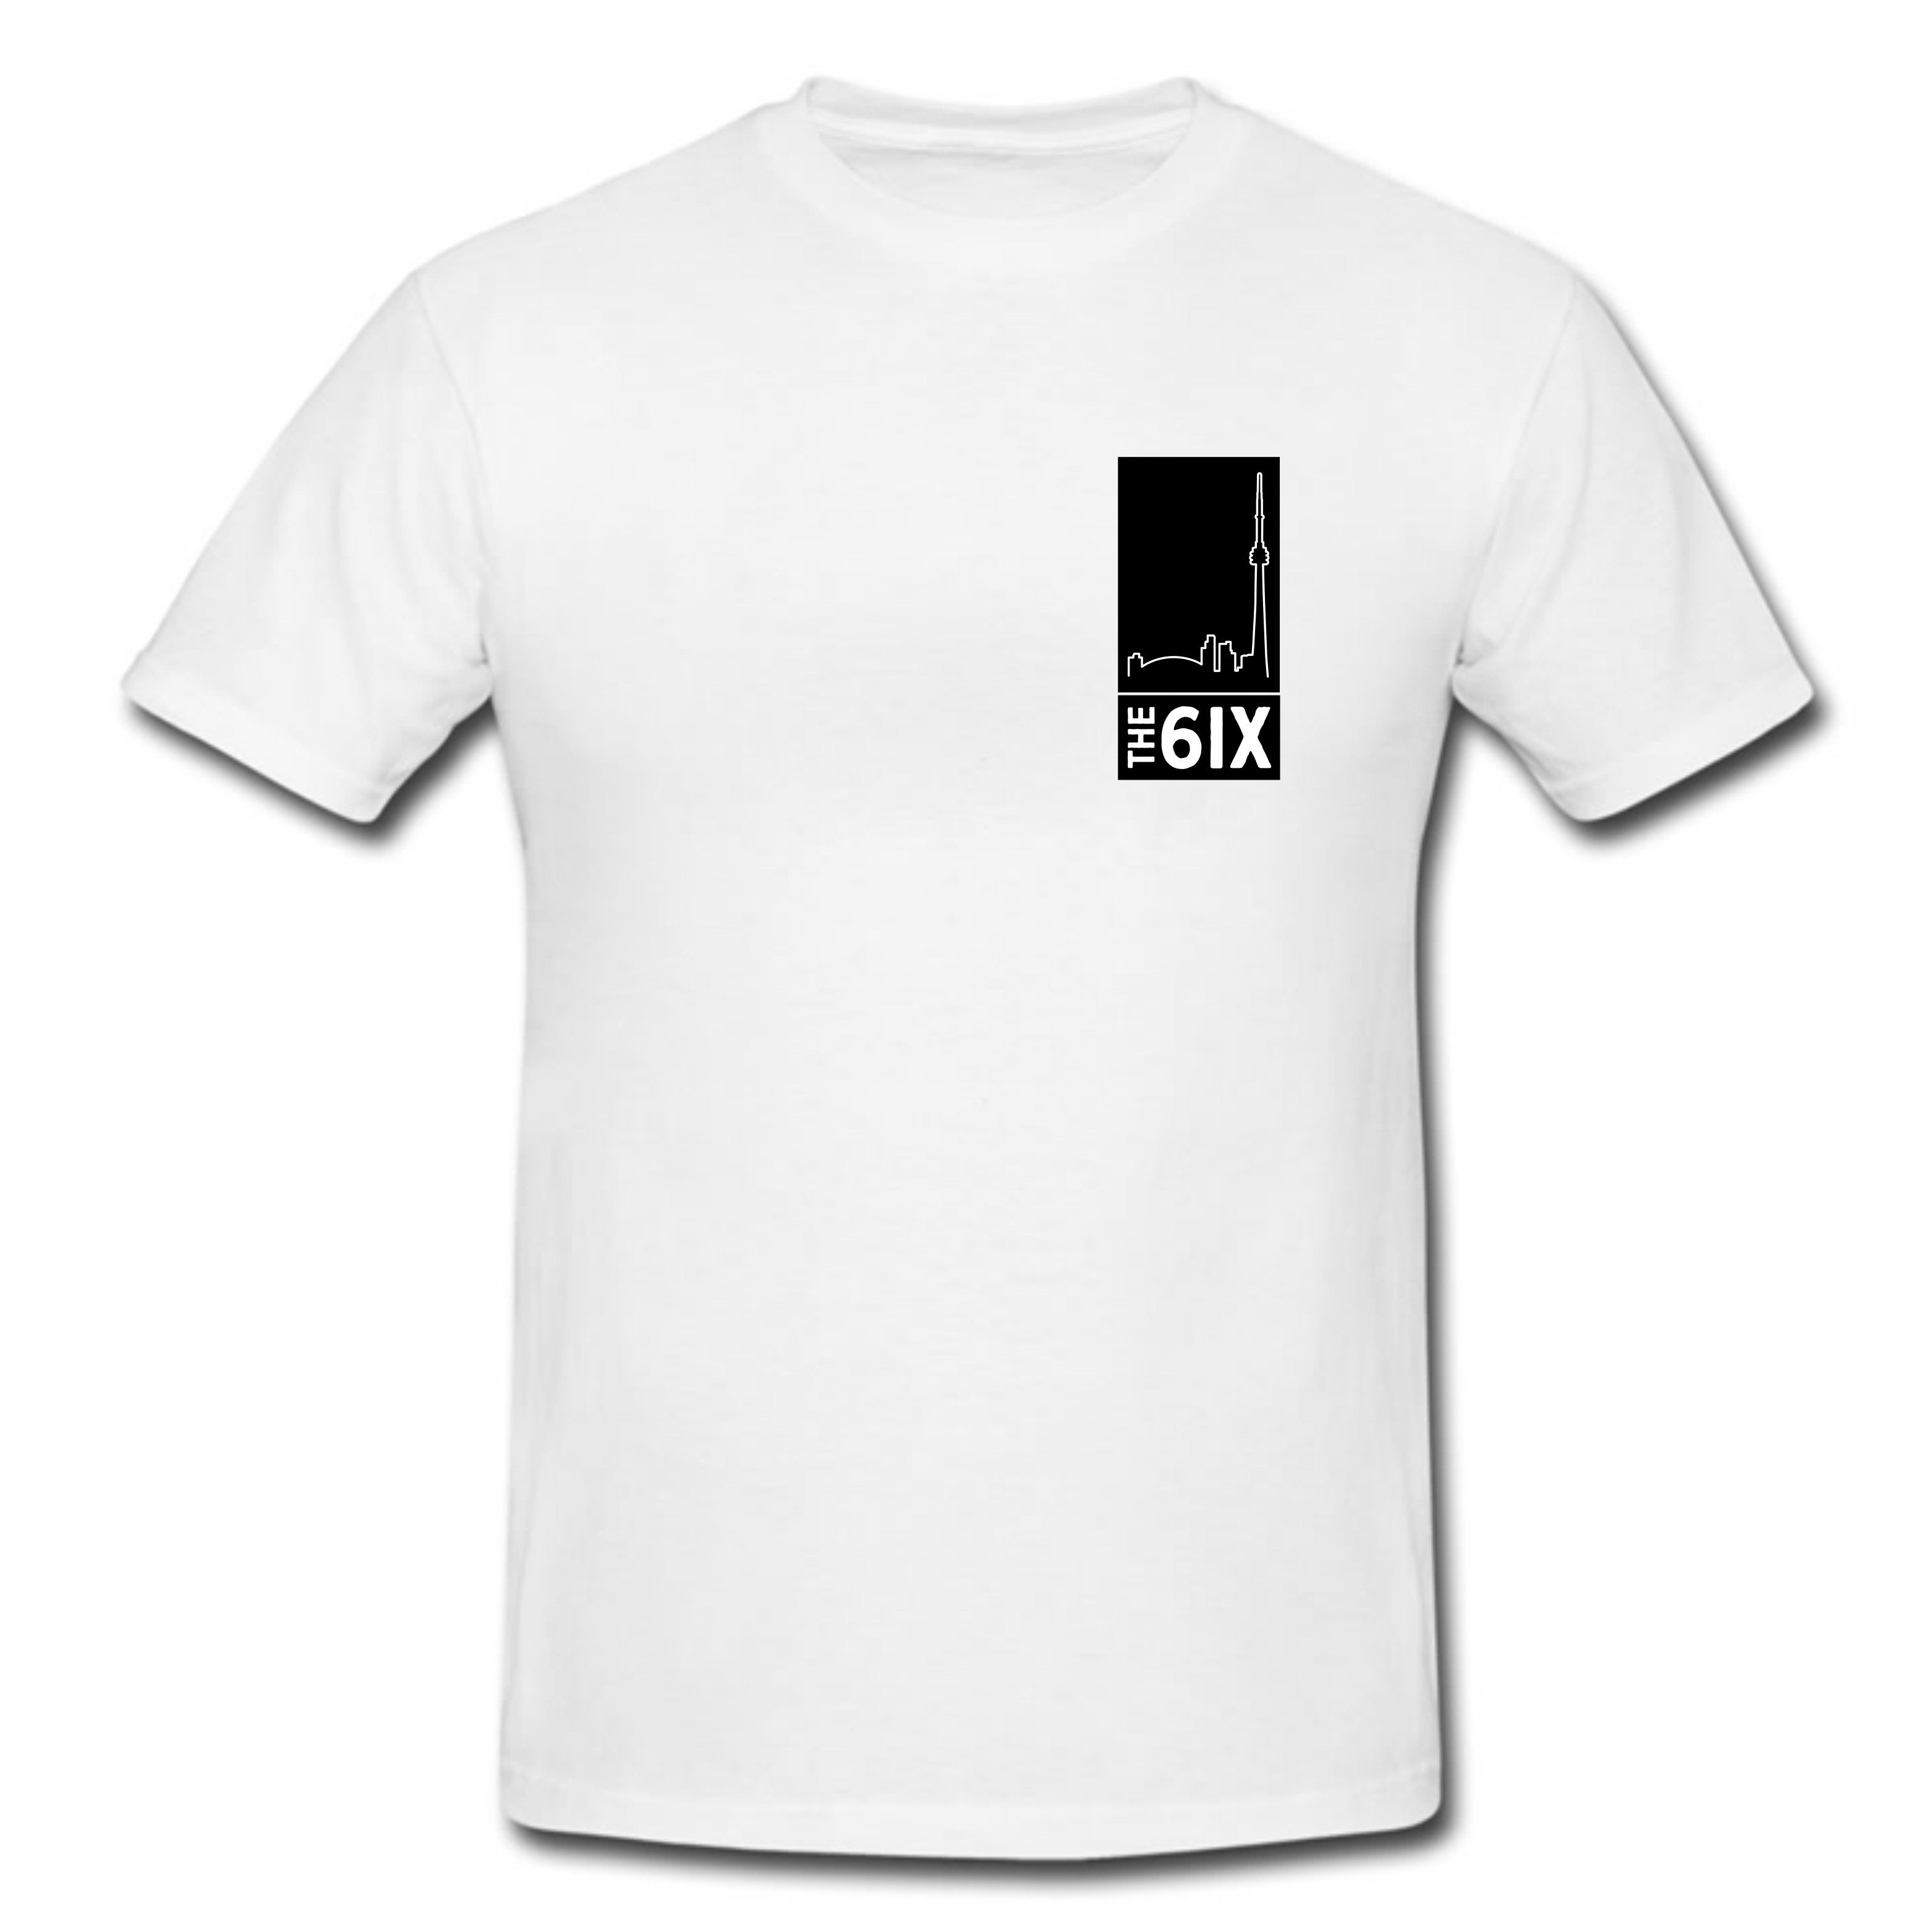 The 6ix Toronto T Shirt in White or Black